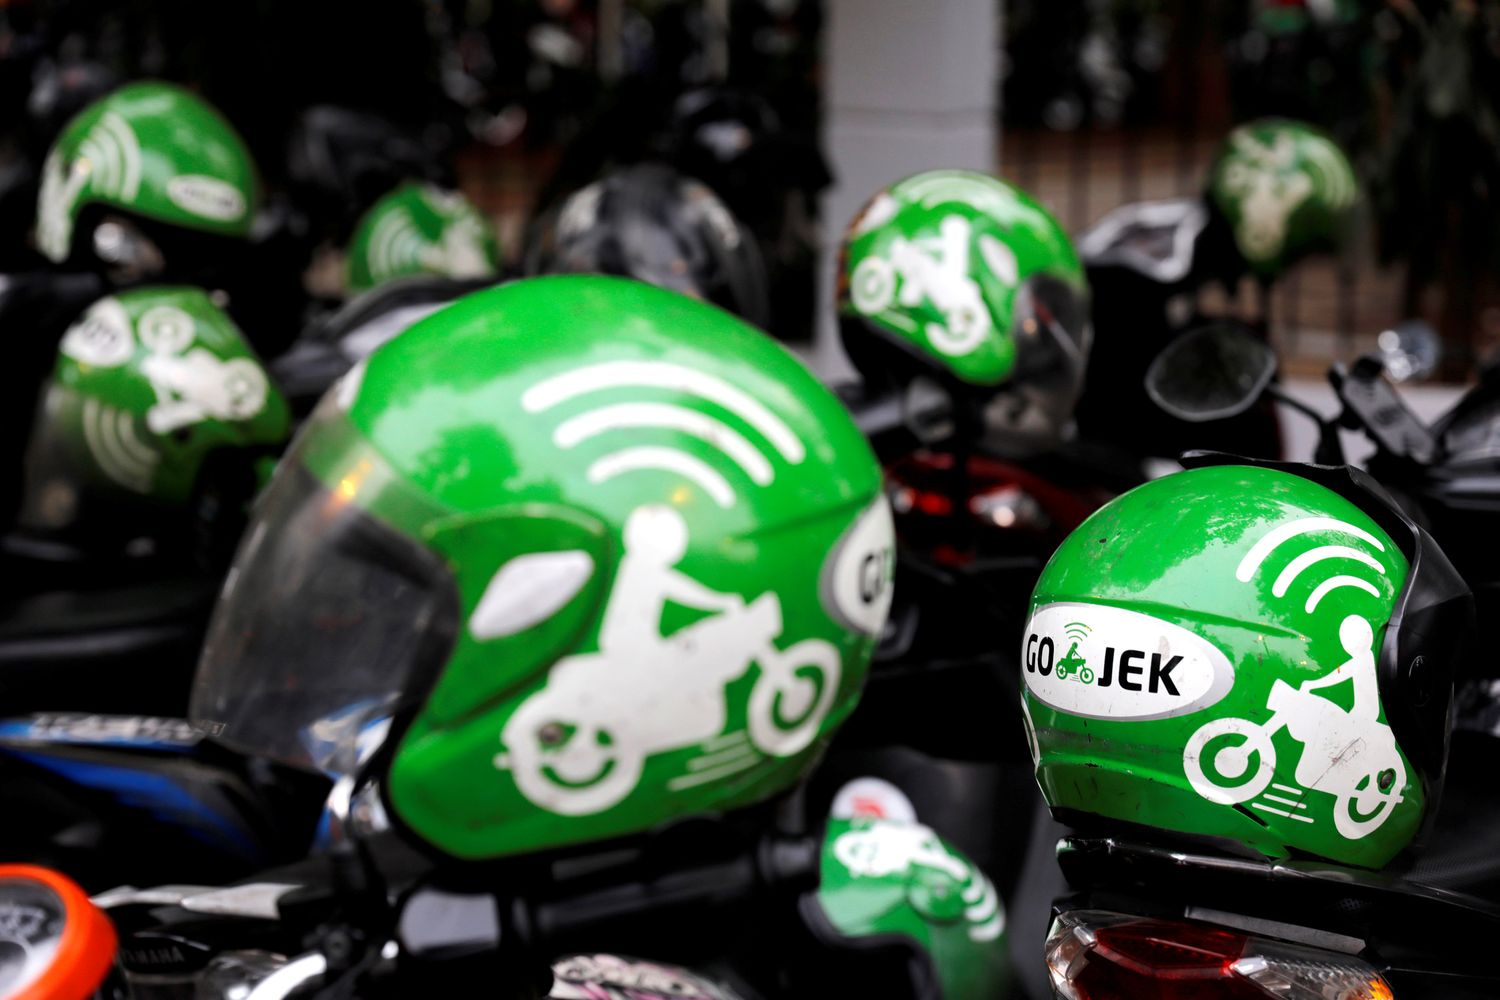 Gojek driver helmets are seen during Go-Food festival in Jakarta last year. (Reuters photo)